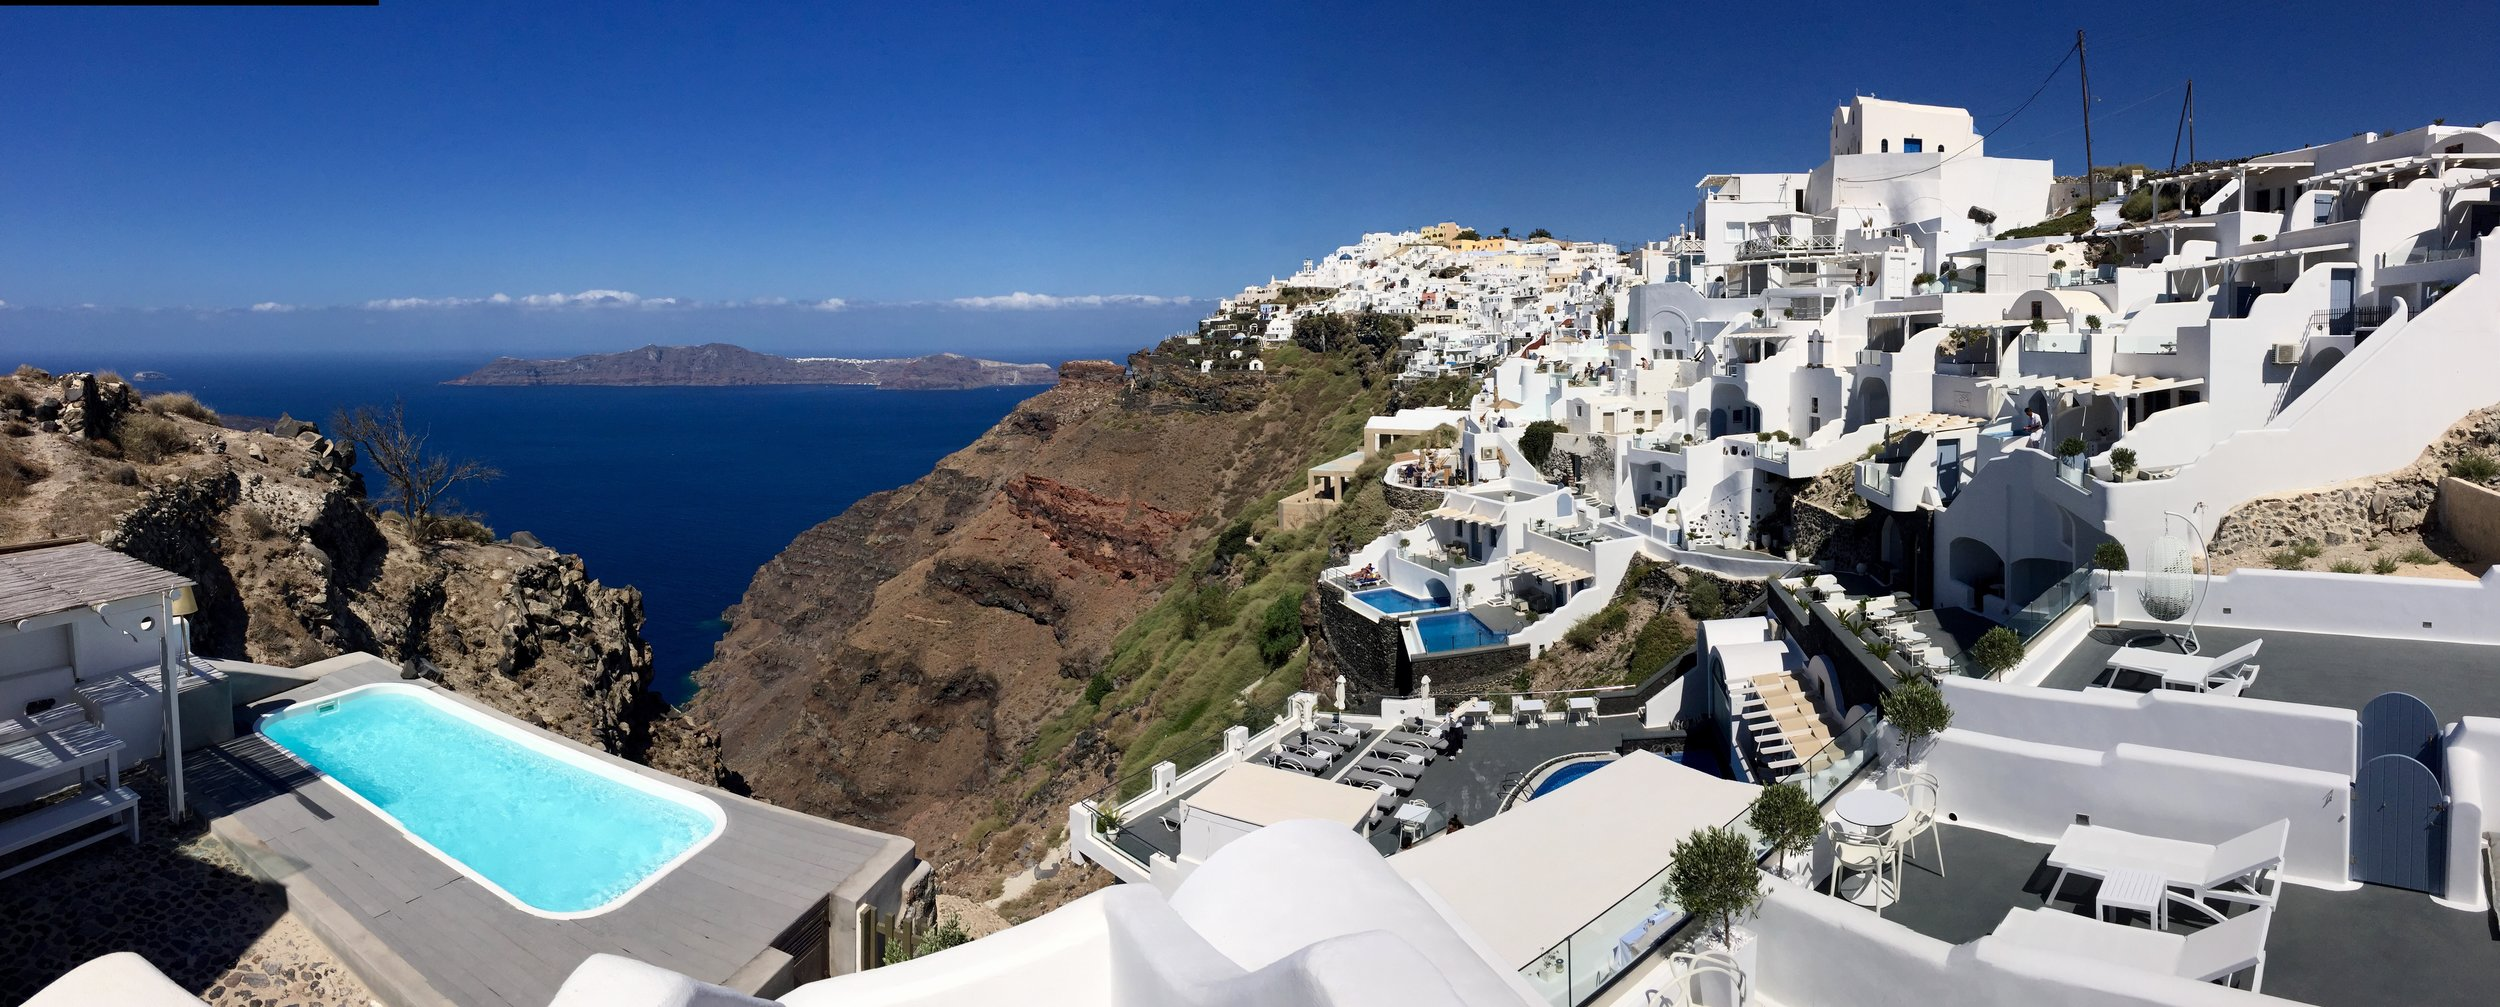 What a view of Santorini